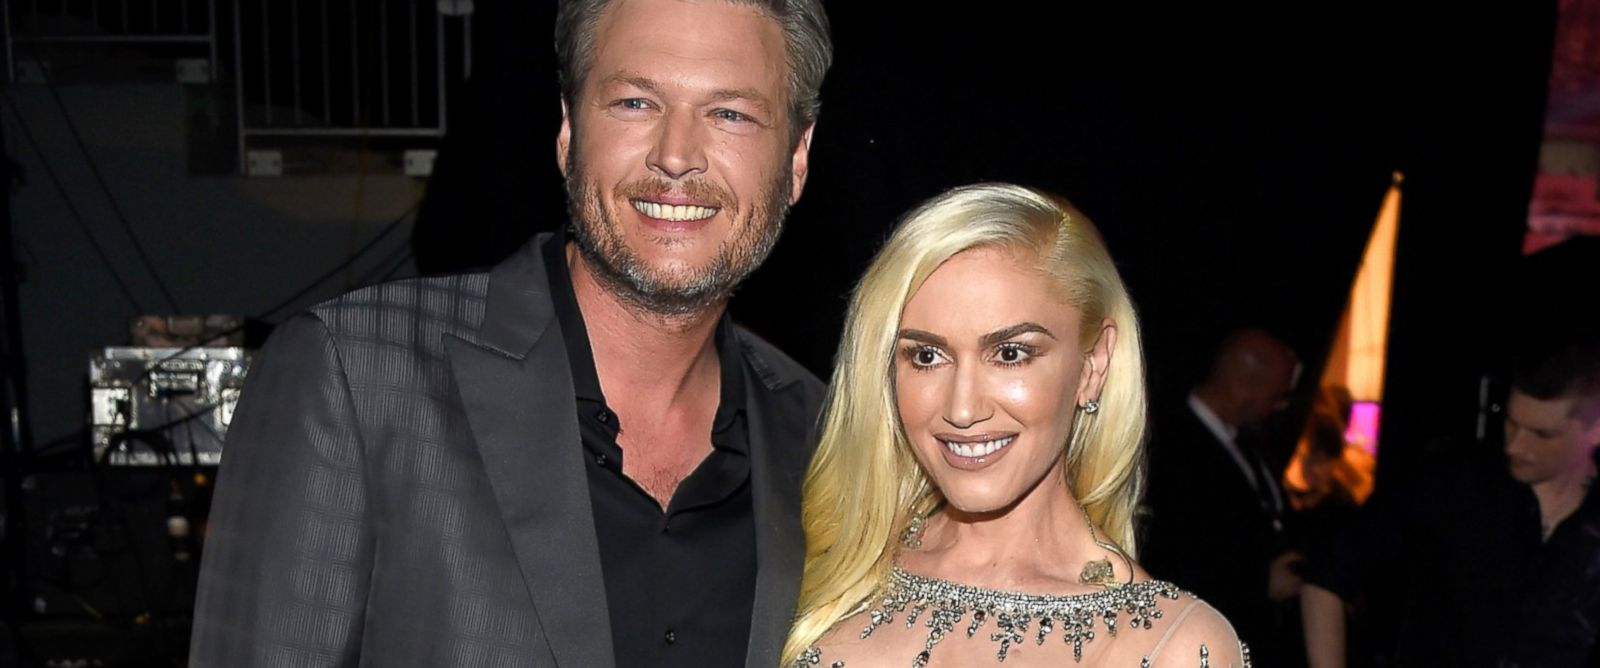 Gwen Stefani Celebrate... Gwen Stefani And Blake Shelton